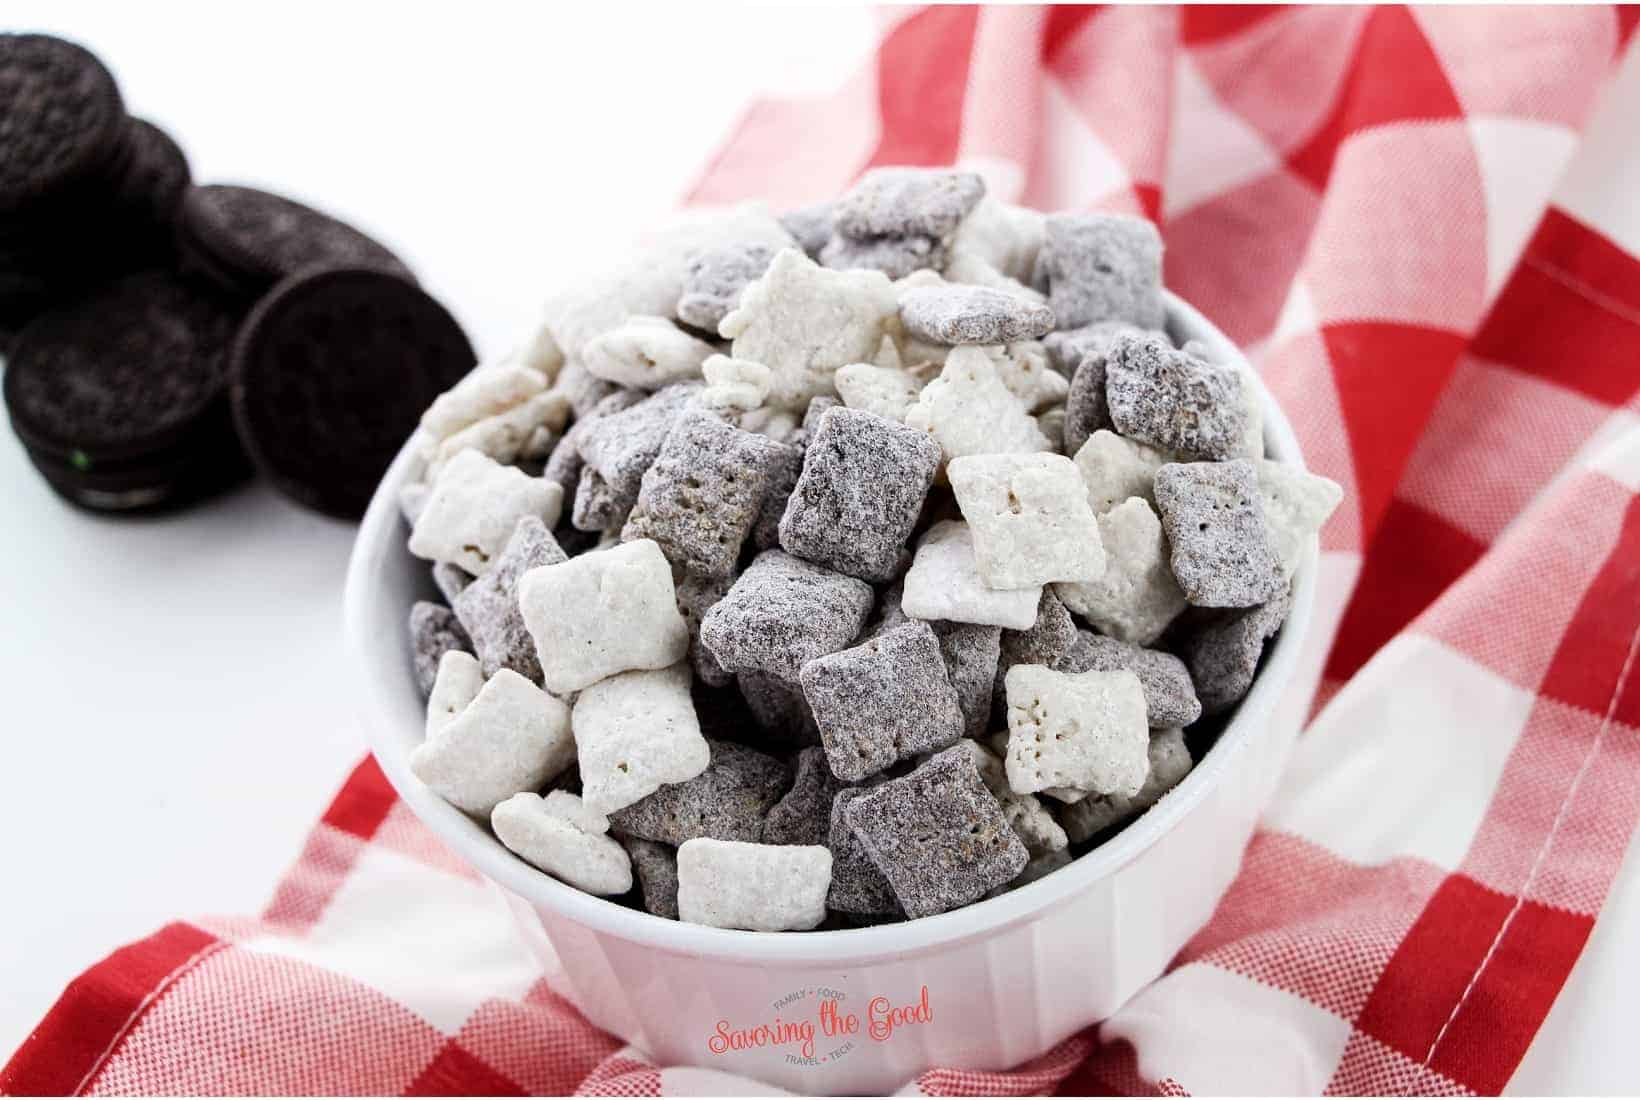 Cookies and cream muddy buddies in a white bowl on a red and white checked cloth